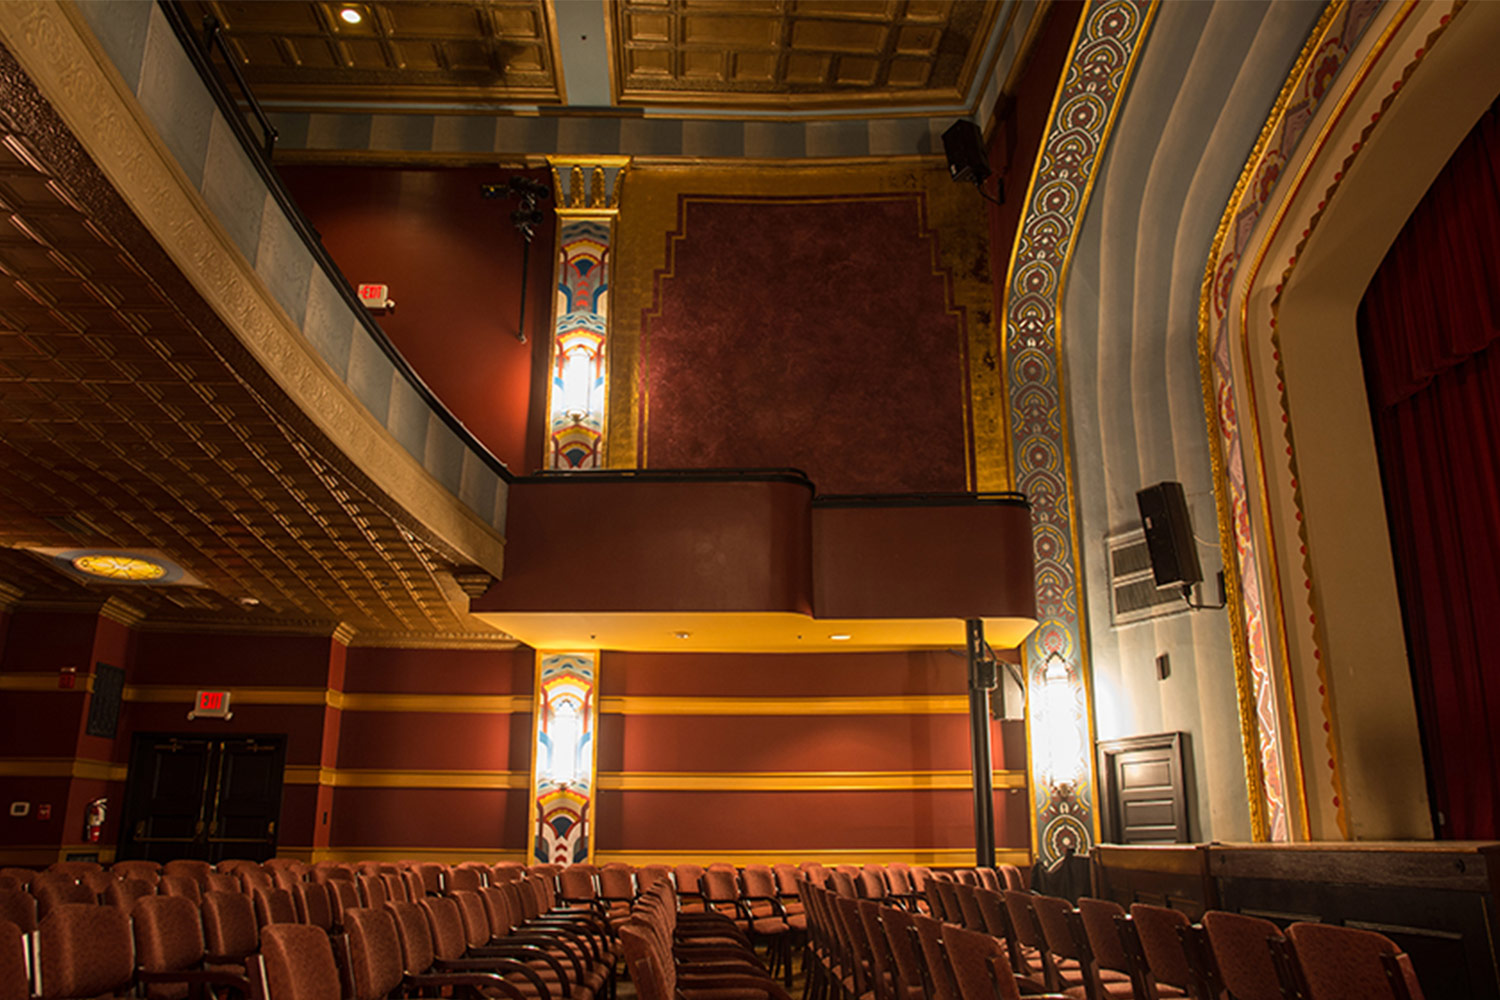 The Avalon Foundation, which runs the Avalon Theatre, secured the services of WSDG during a larger overall renovation initiative to update the theater's acoustics, production lighting, and audiovisual capabilities. Theater inside.